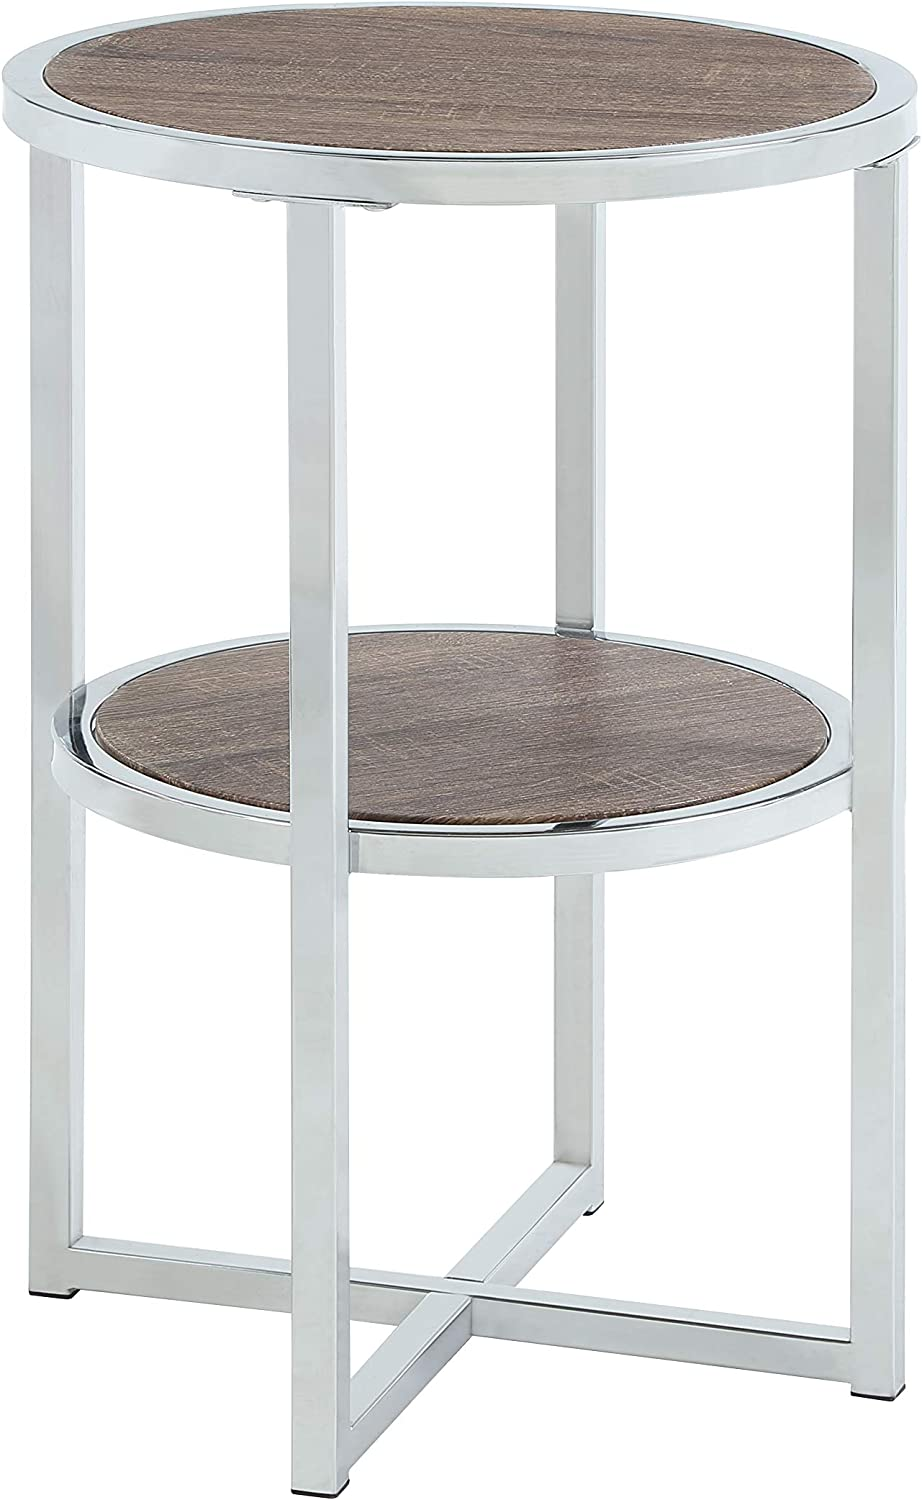 Abington Lane - Contemporary Round End Table - Employs a Fashionable Chrome Frame - Two Tiered for Storage - Perfect for Living Room or Office - (Brown Finish)